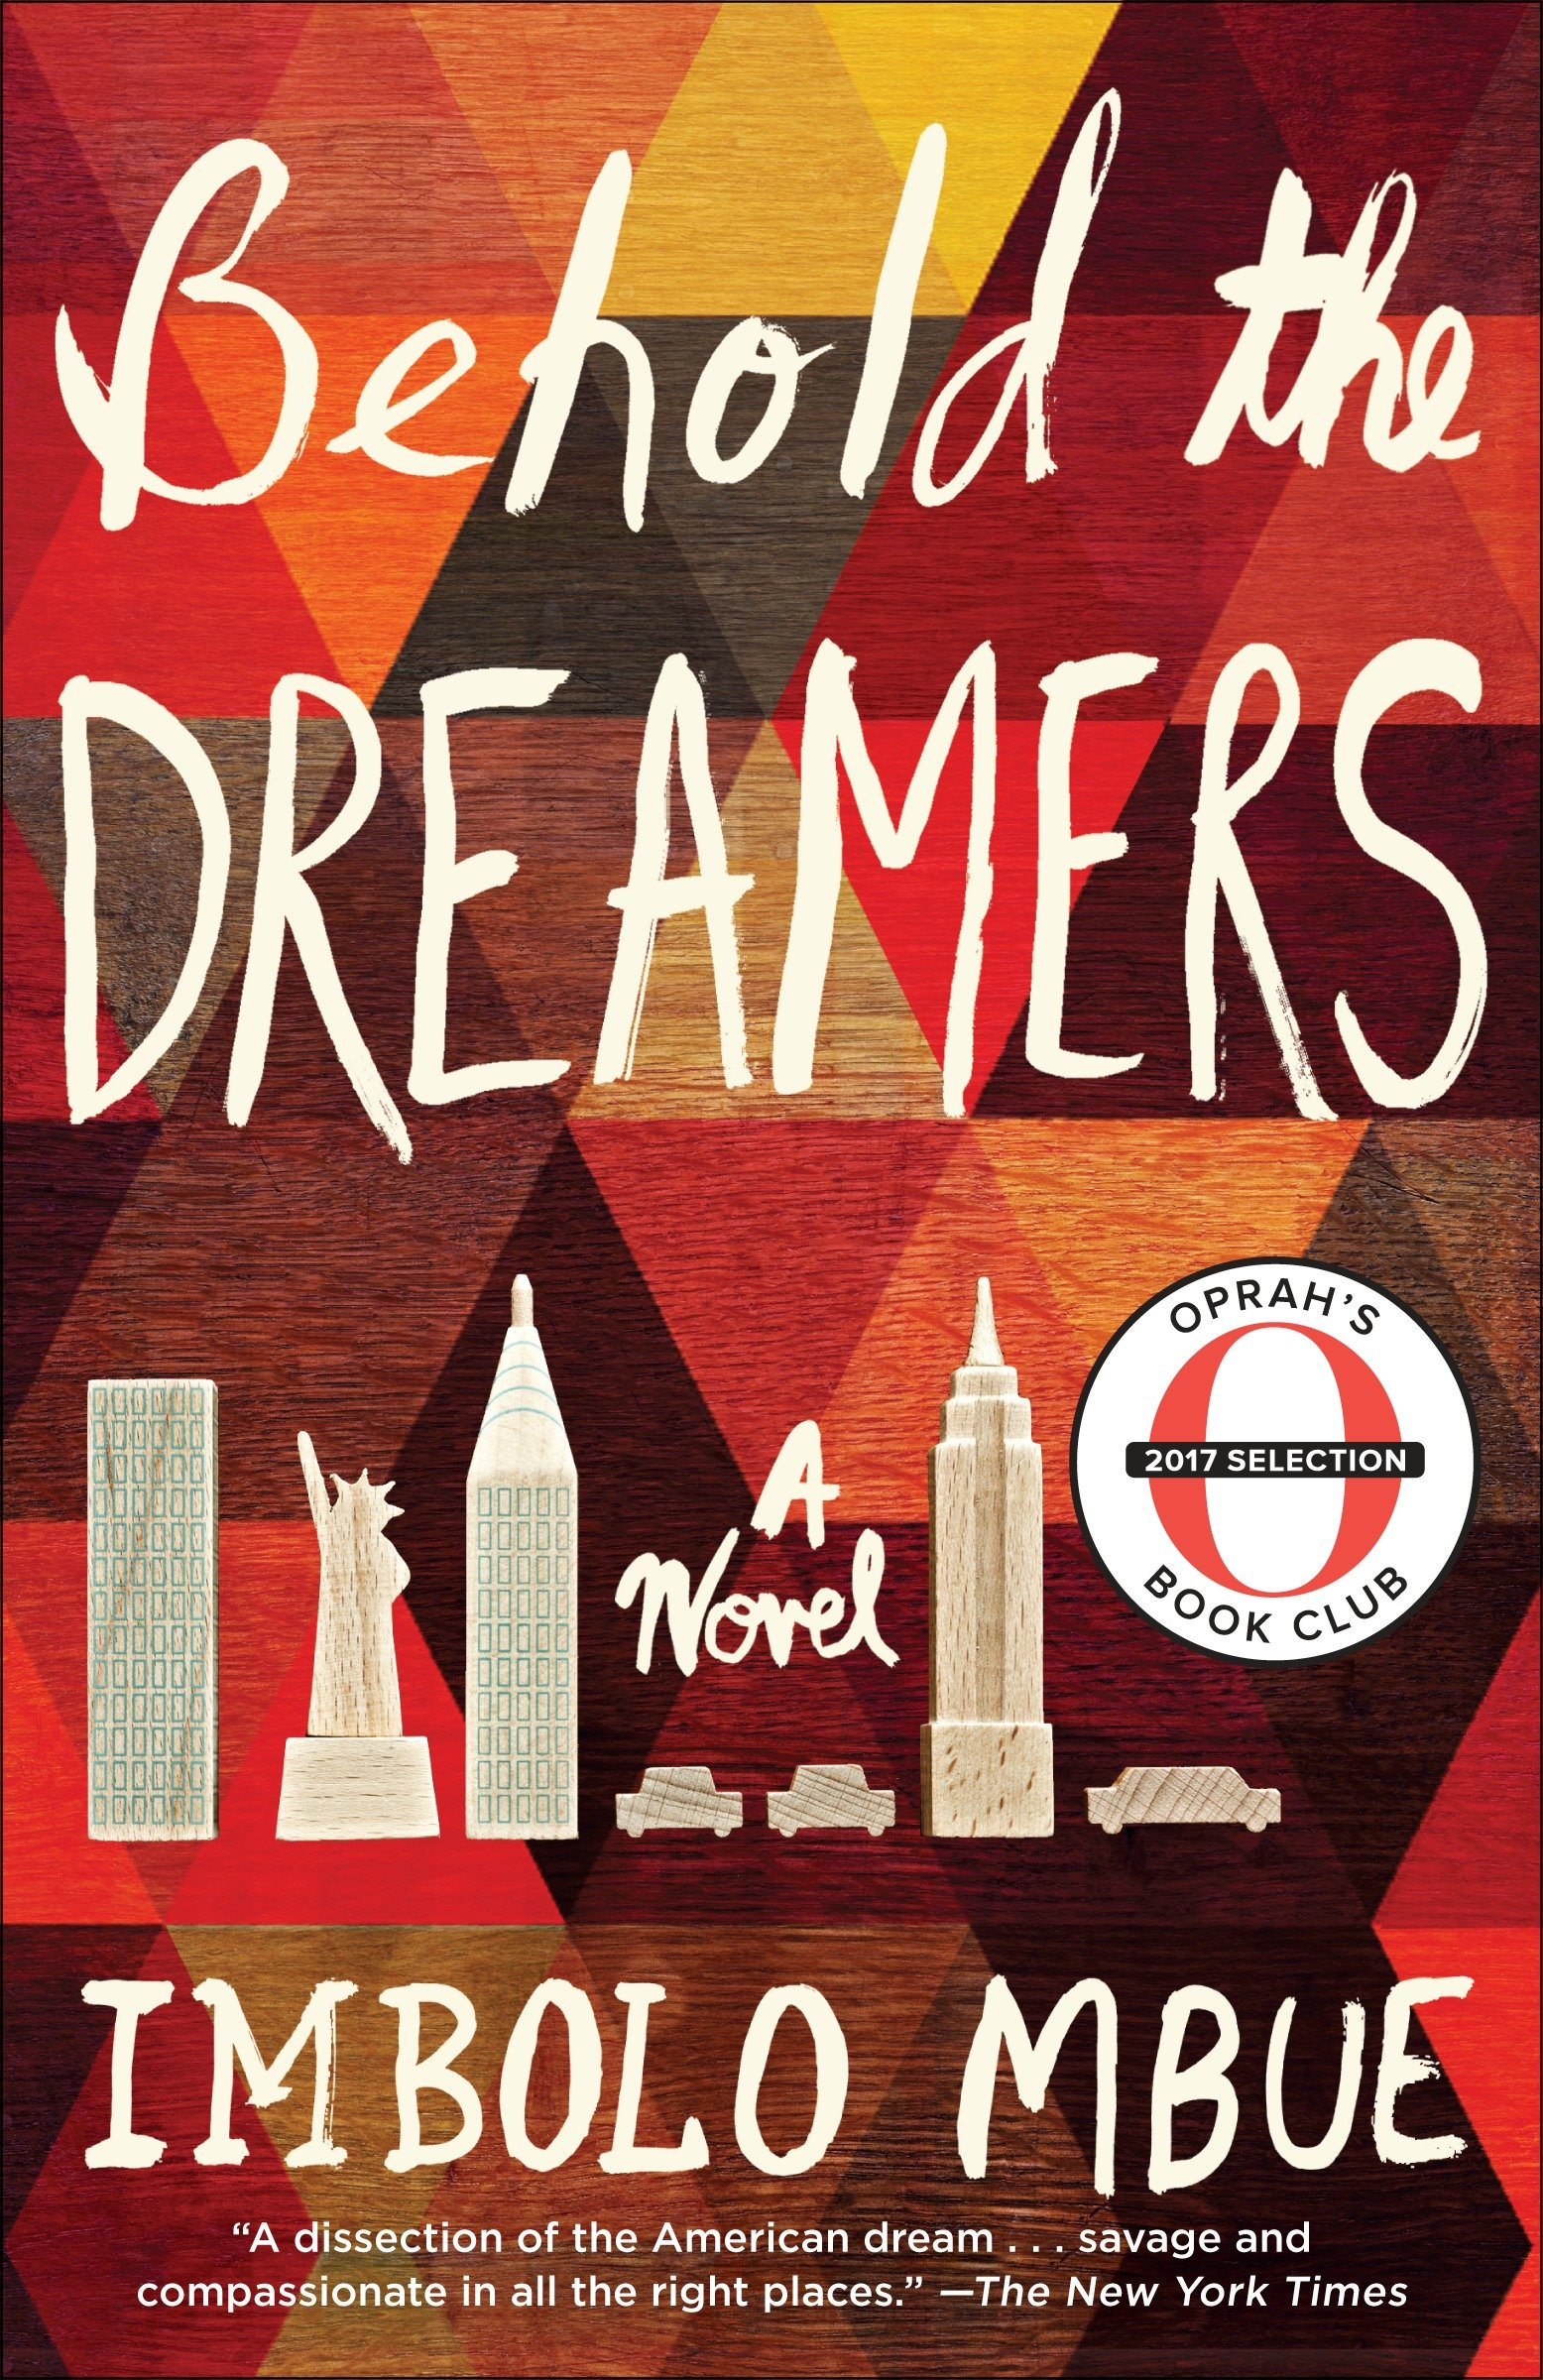 Image: Behold the Dreamers